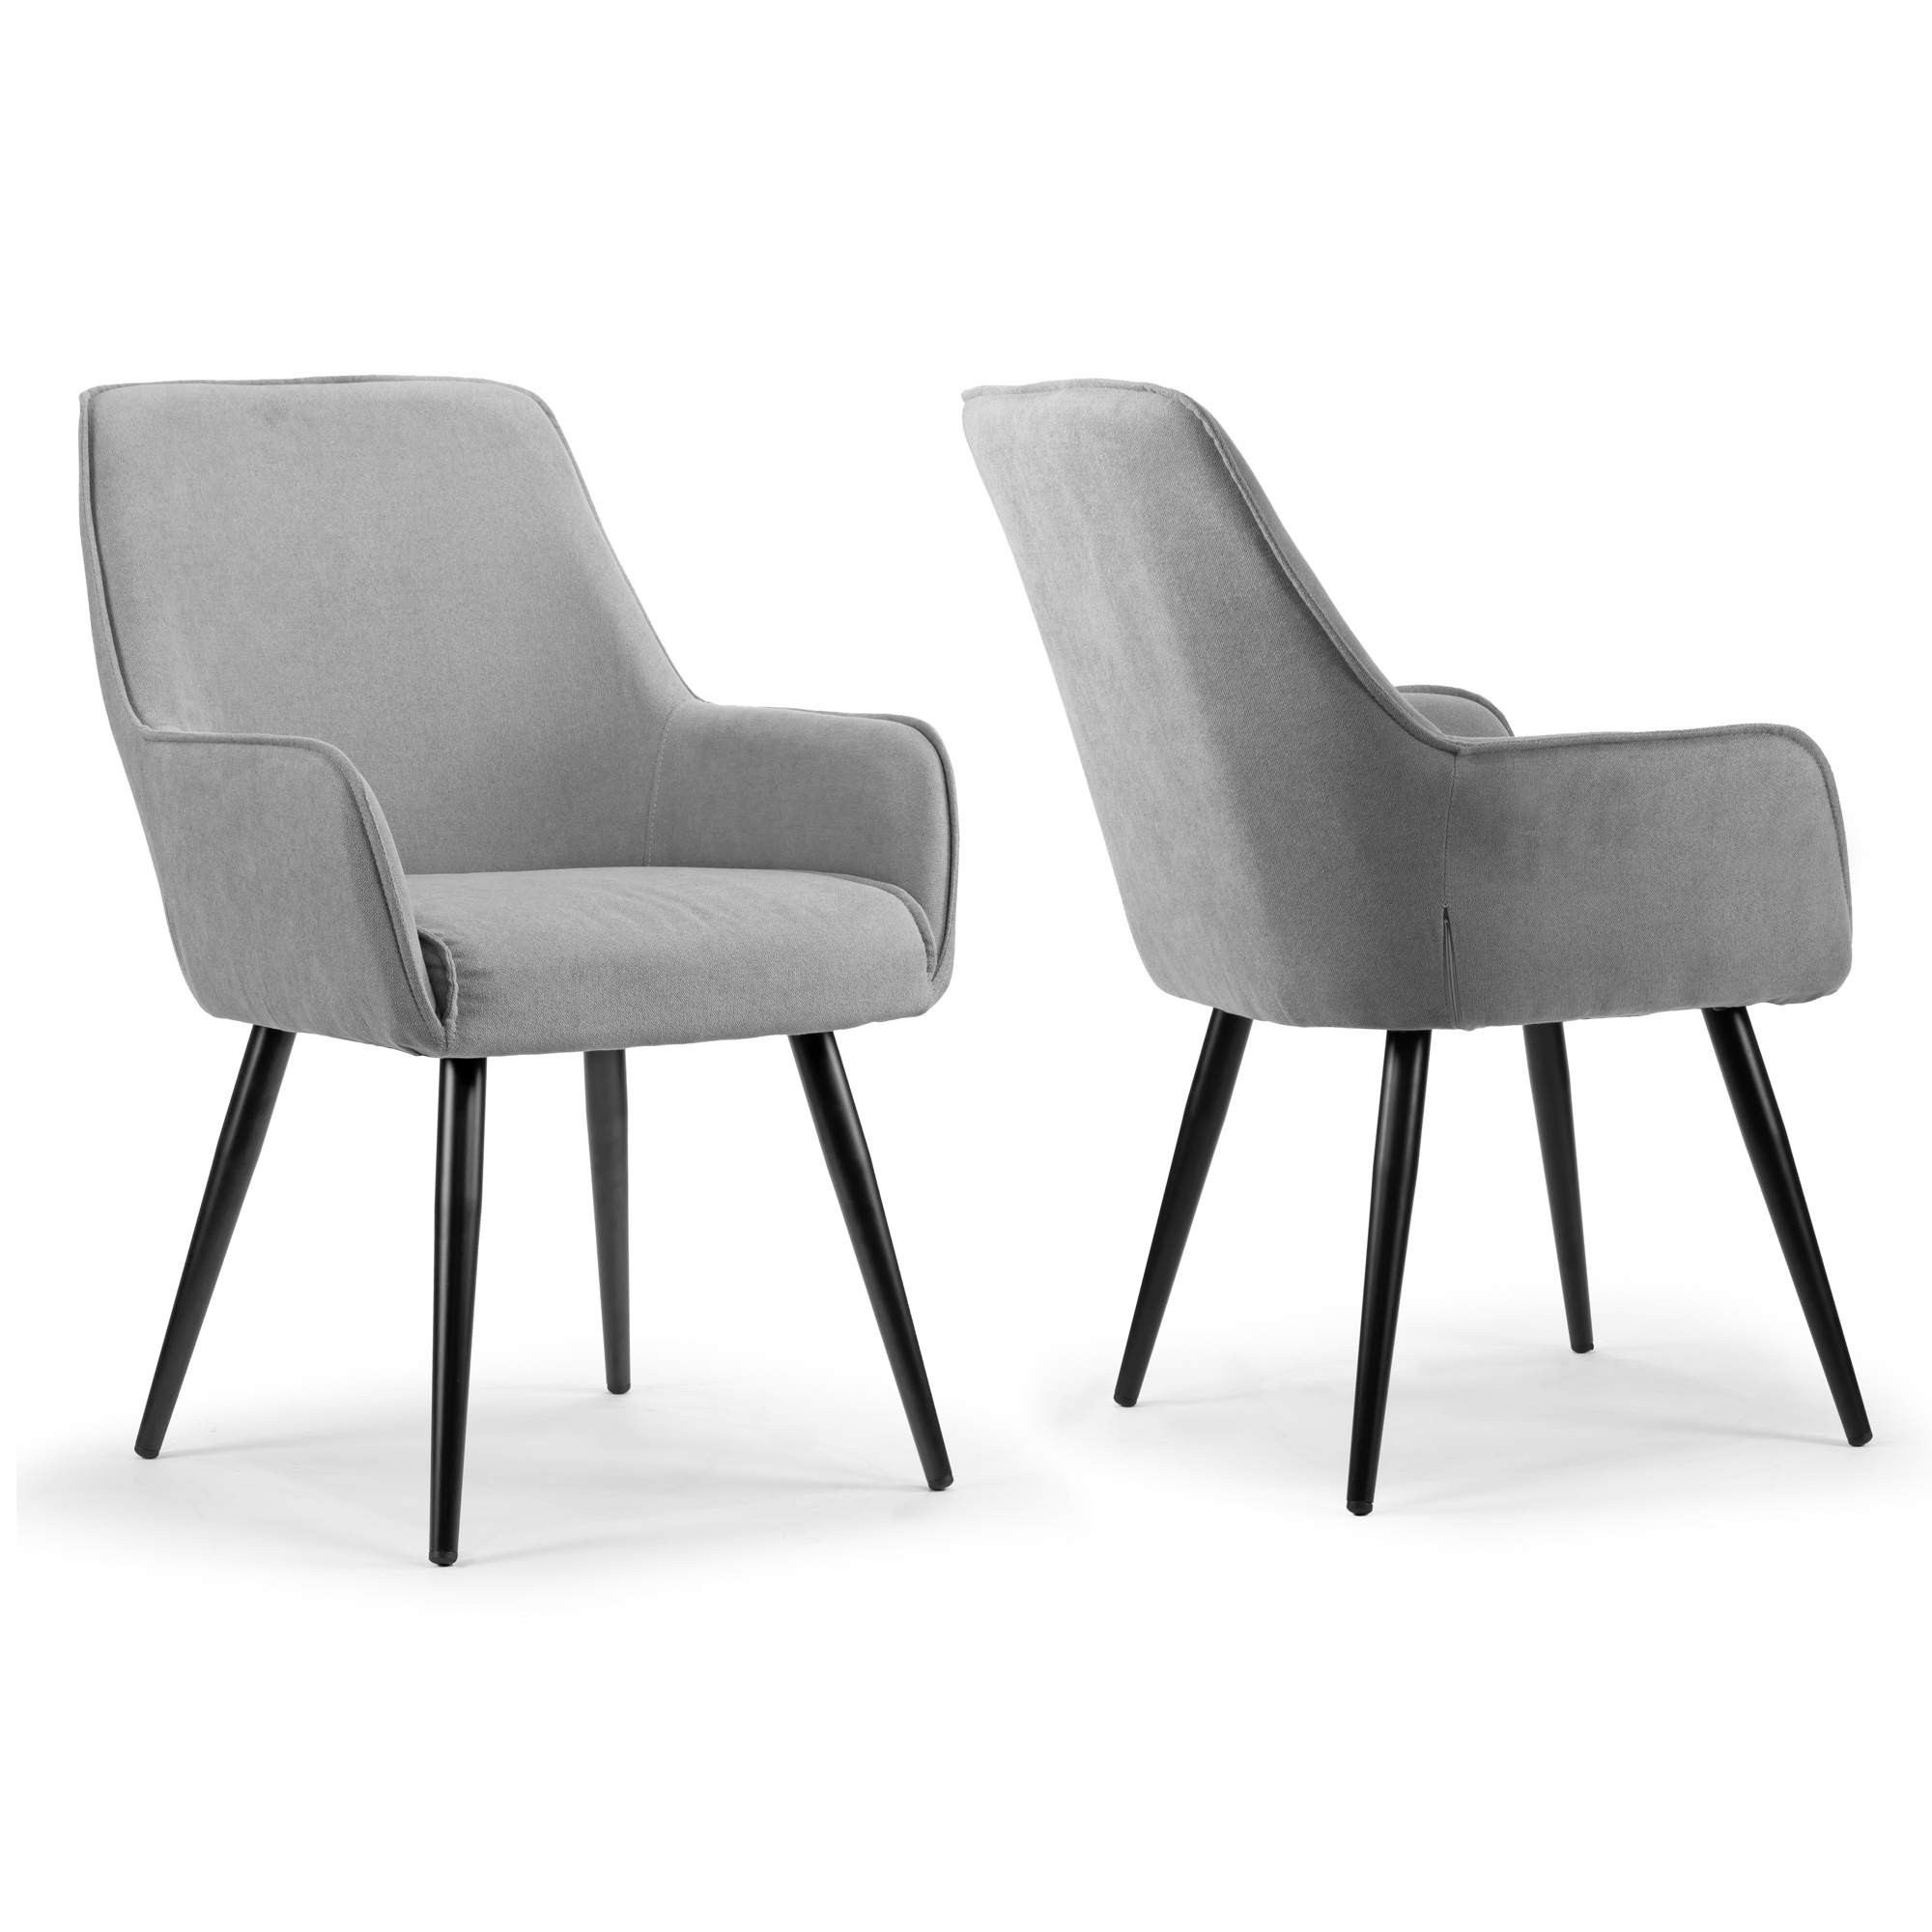 Set Of 2 Amir Grey Dining Chair With Black Metal Legs And